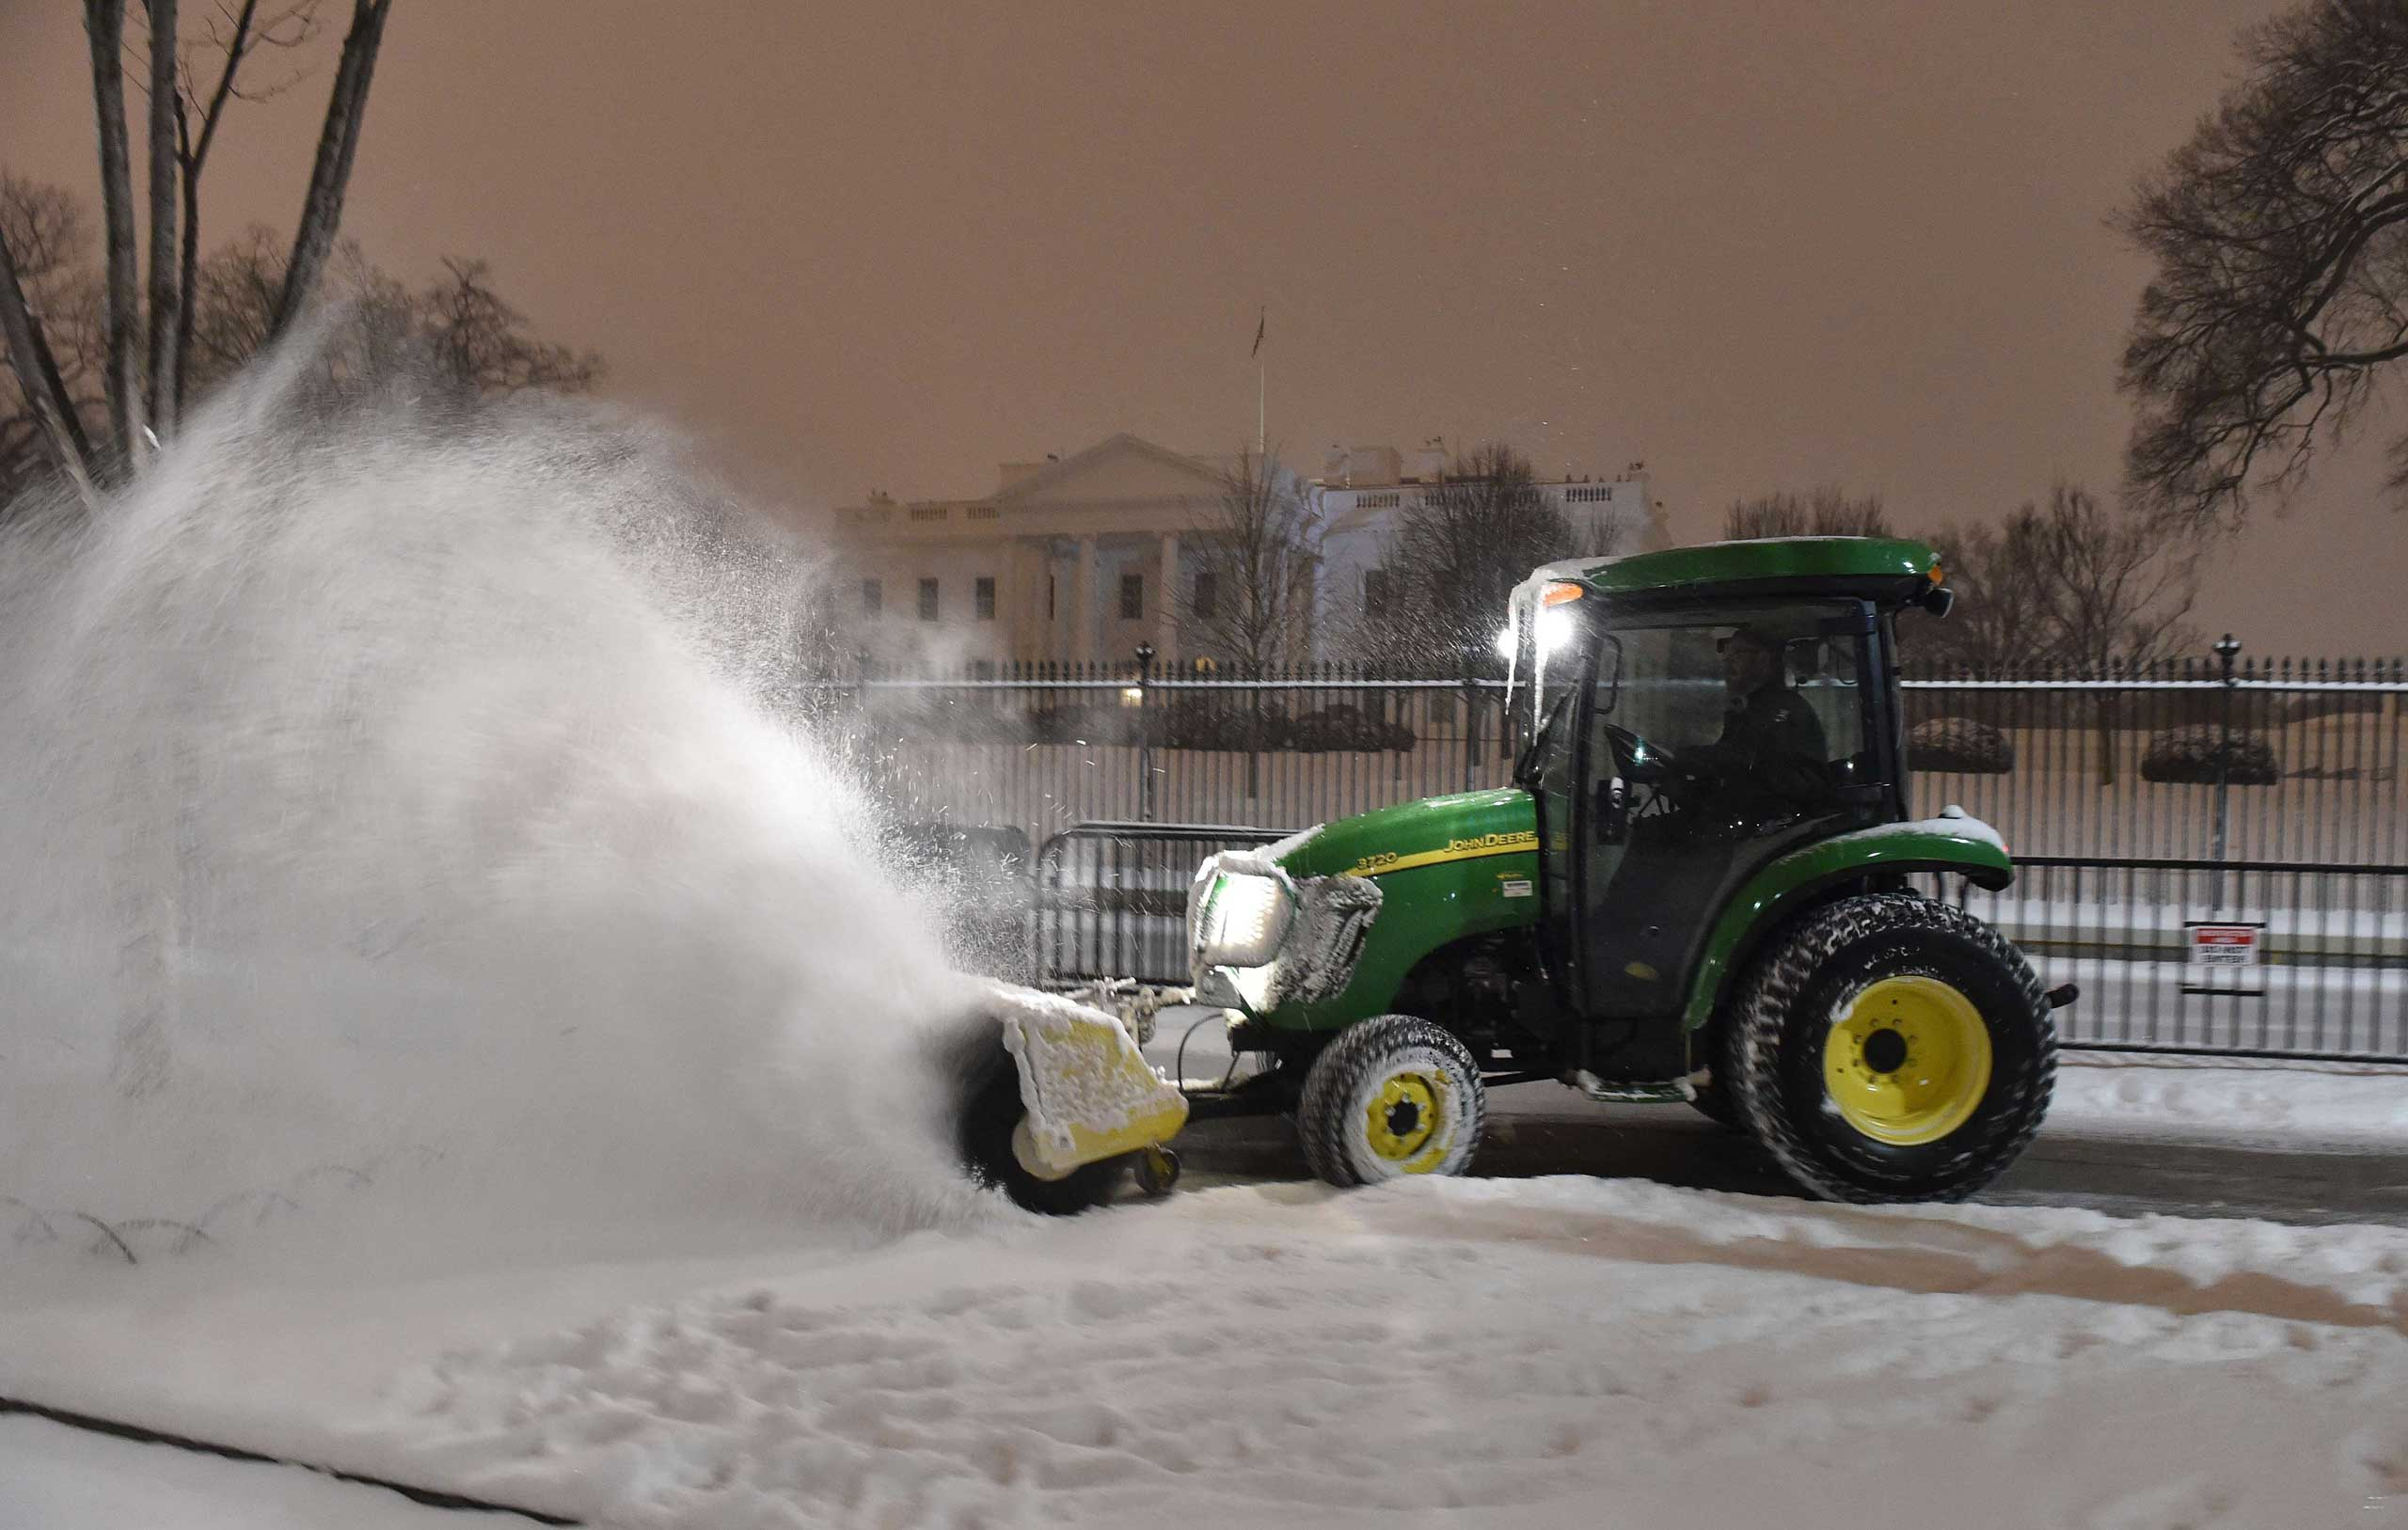 A snow-plough cleans the snow on Pennsylvania Avenue in front of the White House in Washington on Feb. 16, 2015.